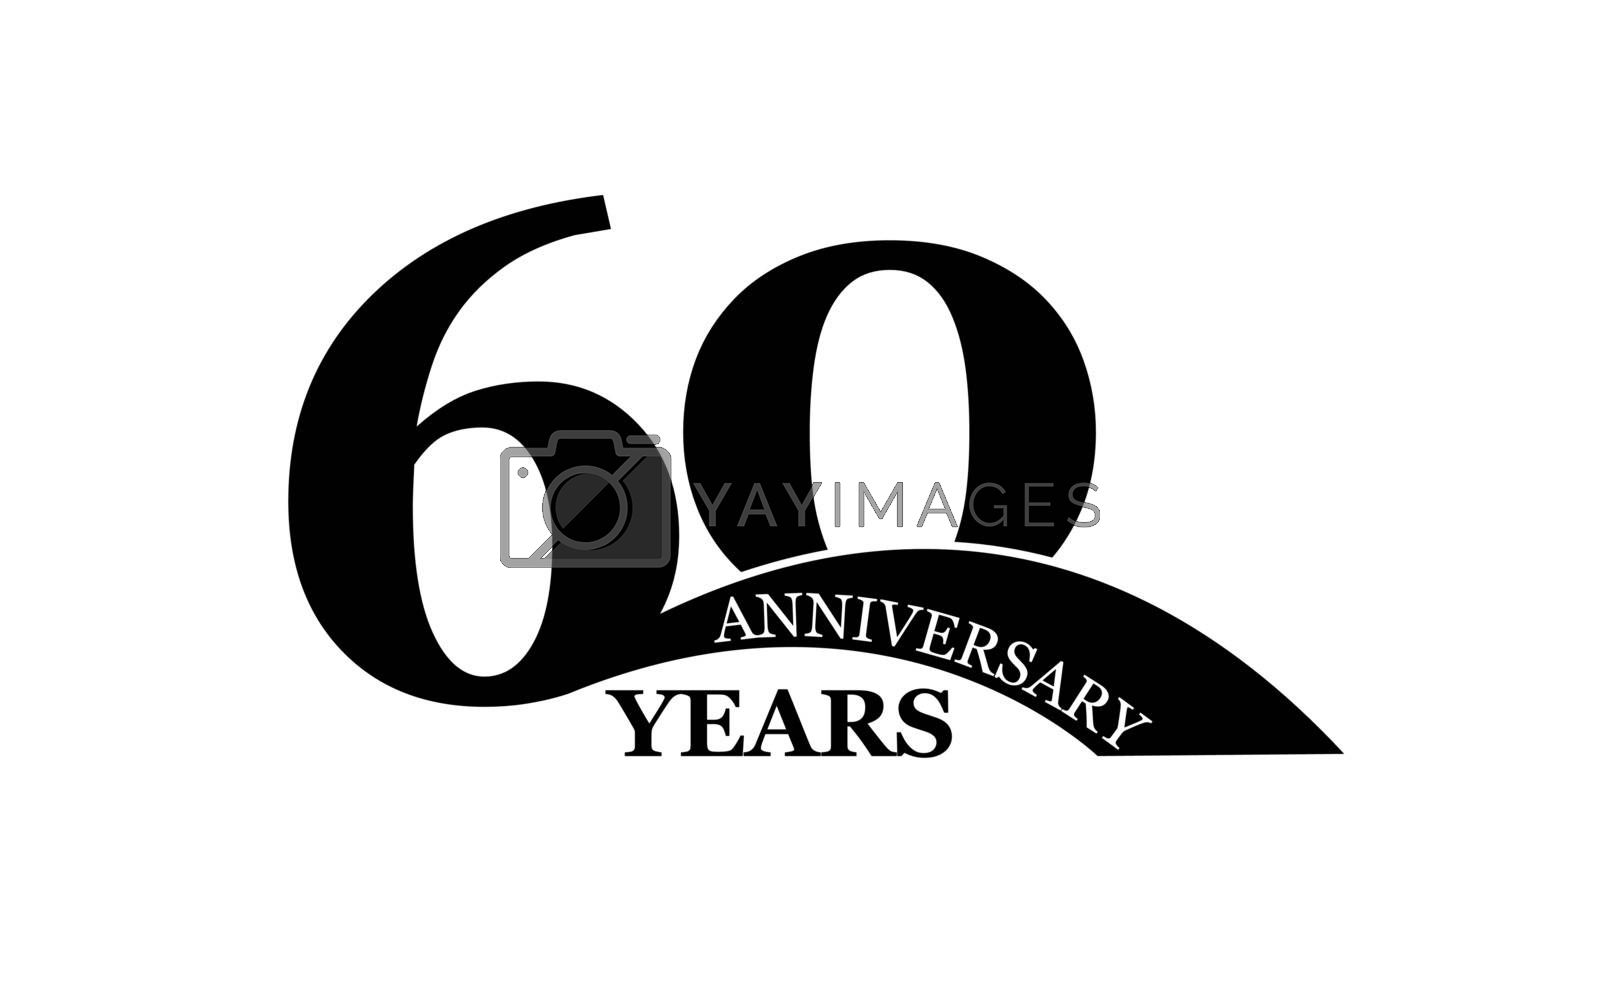 60 years anniversary, simple flat design, logo for design and decoration